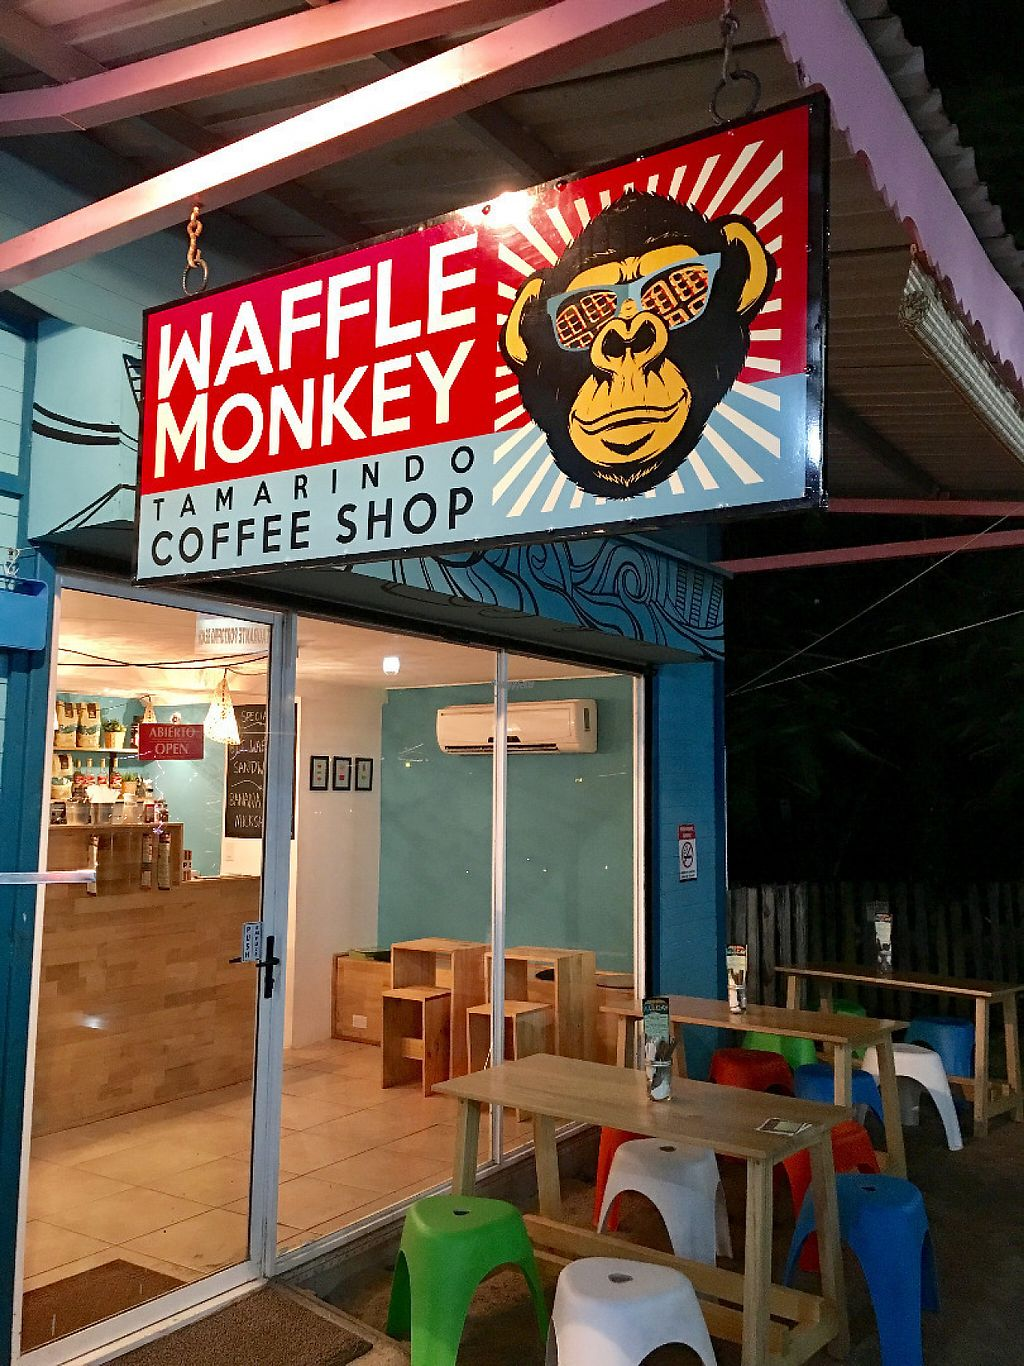 """Photo of Waffle Monkey  by <a href=""""/members/profile/community"""">community</a> <br/>Exterior <br/> November 29, 2016  - <a href='/contact/abuse/image/75873/195783'>Report</a>"""